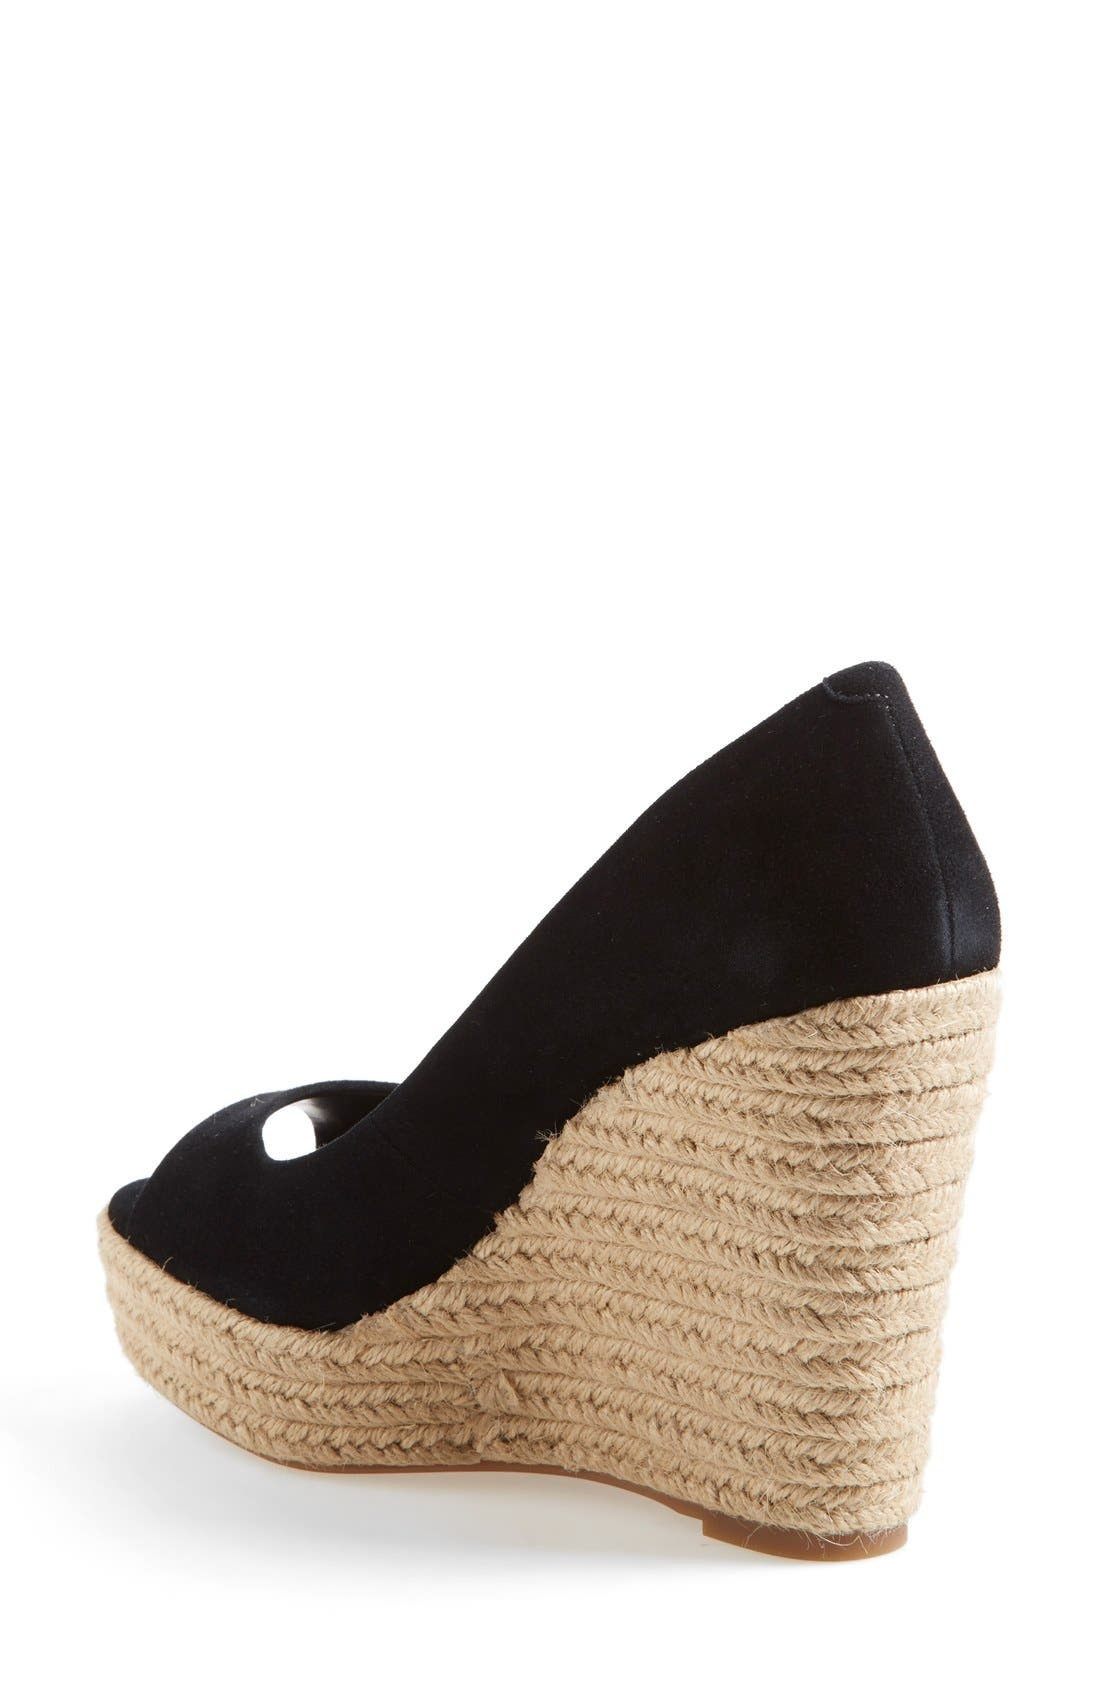 'Totsi' Peep Toe Espadrille Wedge,                             Alternate thumbnail 2, color,                             001